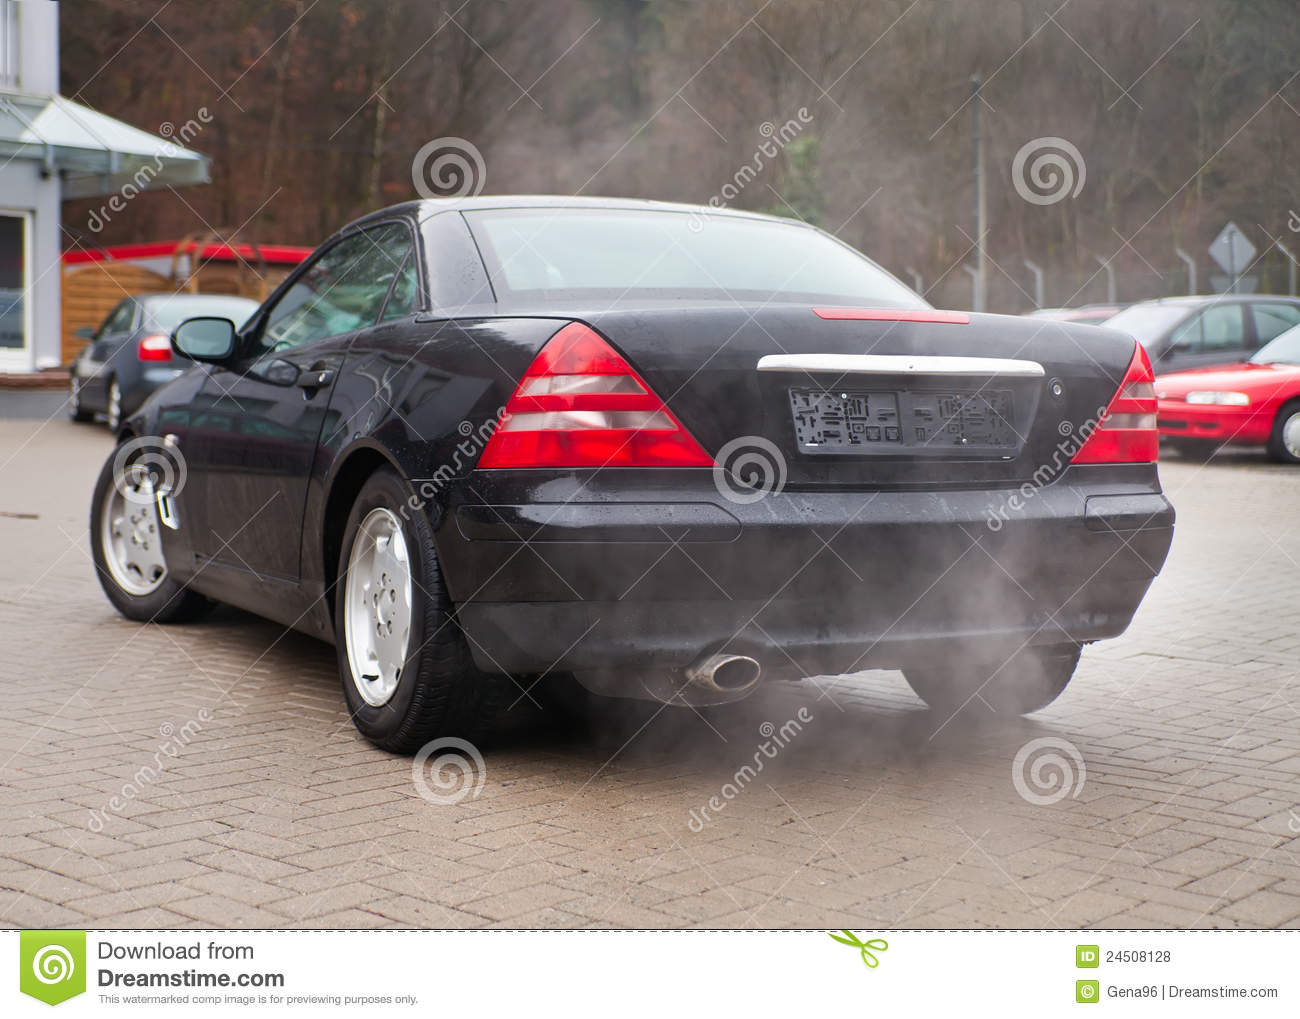 Cars and air pollution stock photo image of dioxide 24508128 cars and air pollution biocorpaavc Images